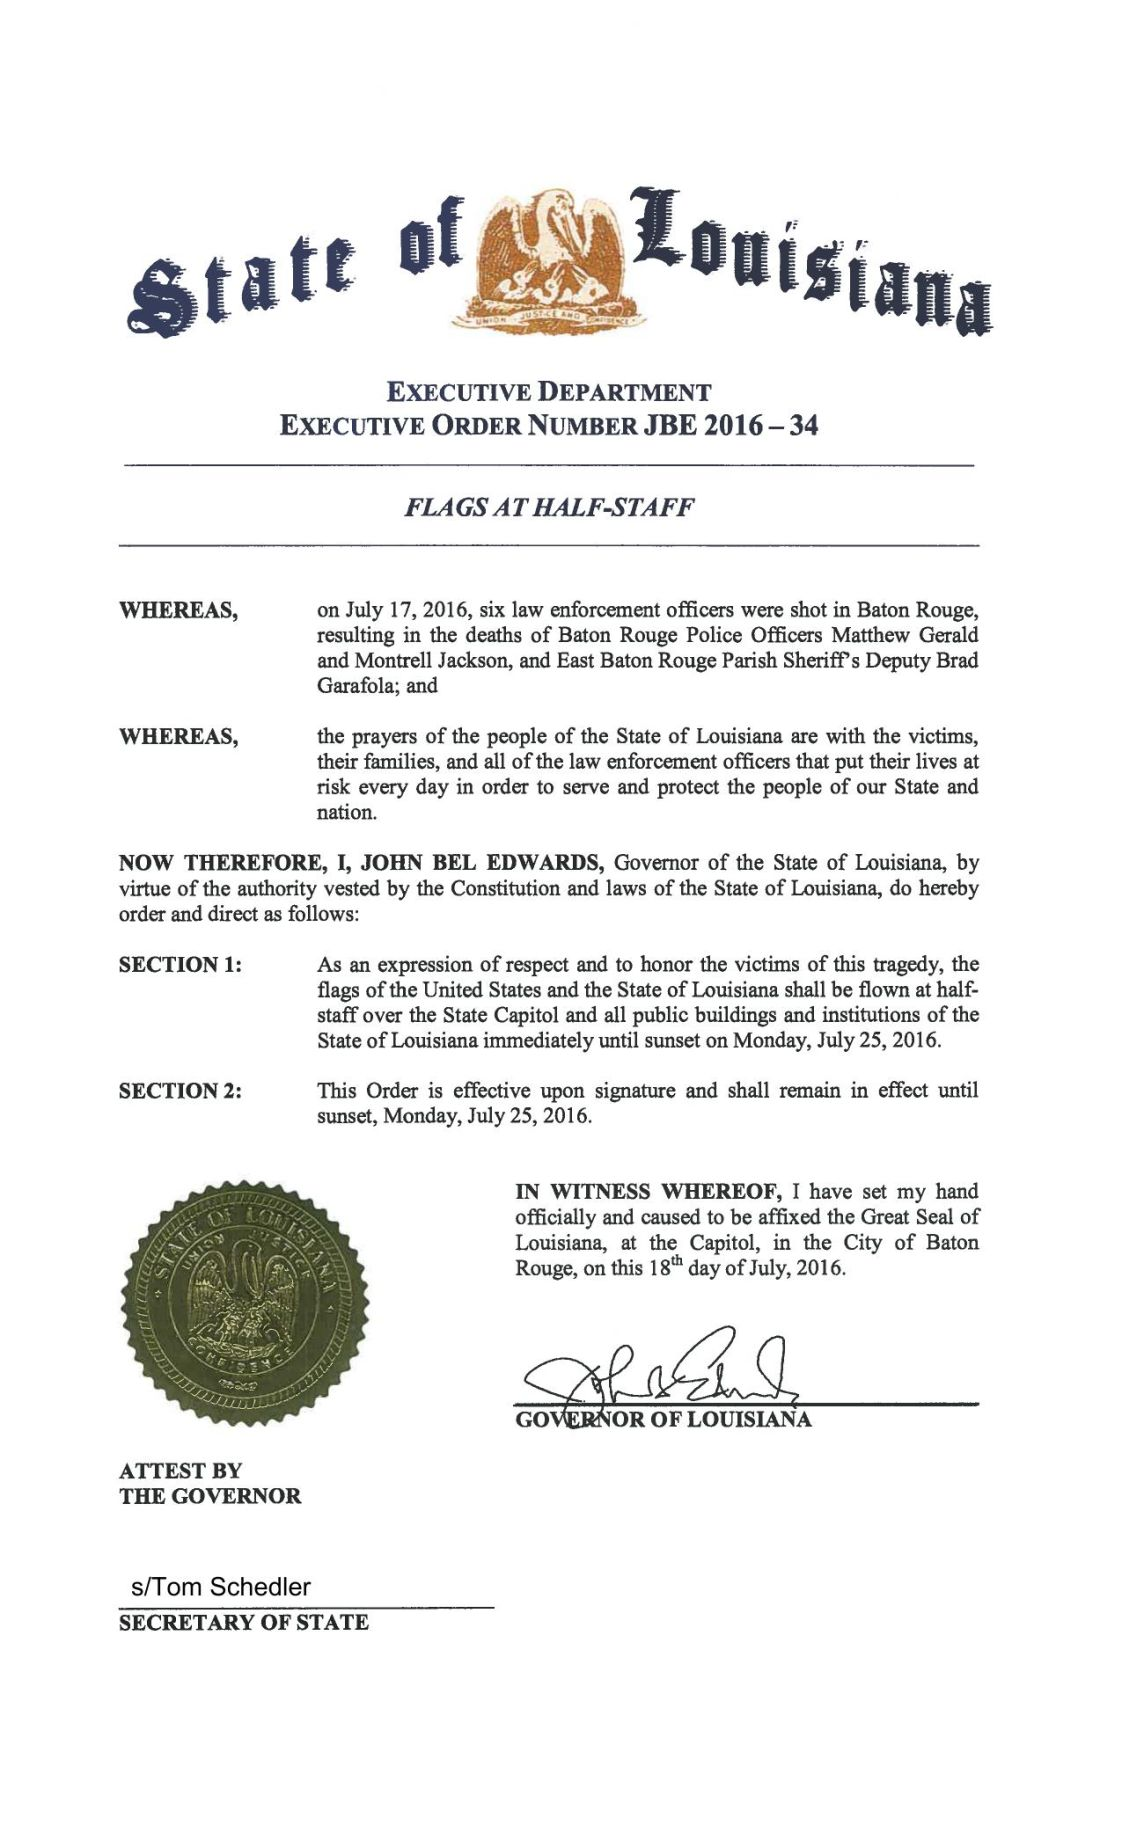 Gov. Edwards executive order: Flags at half staff